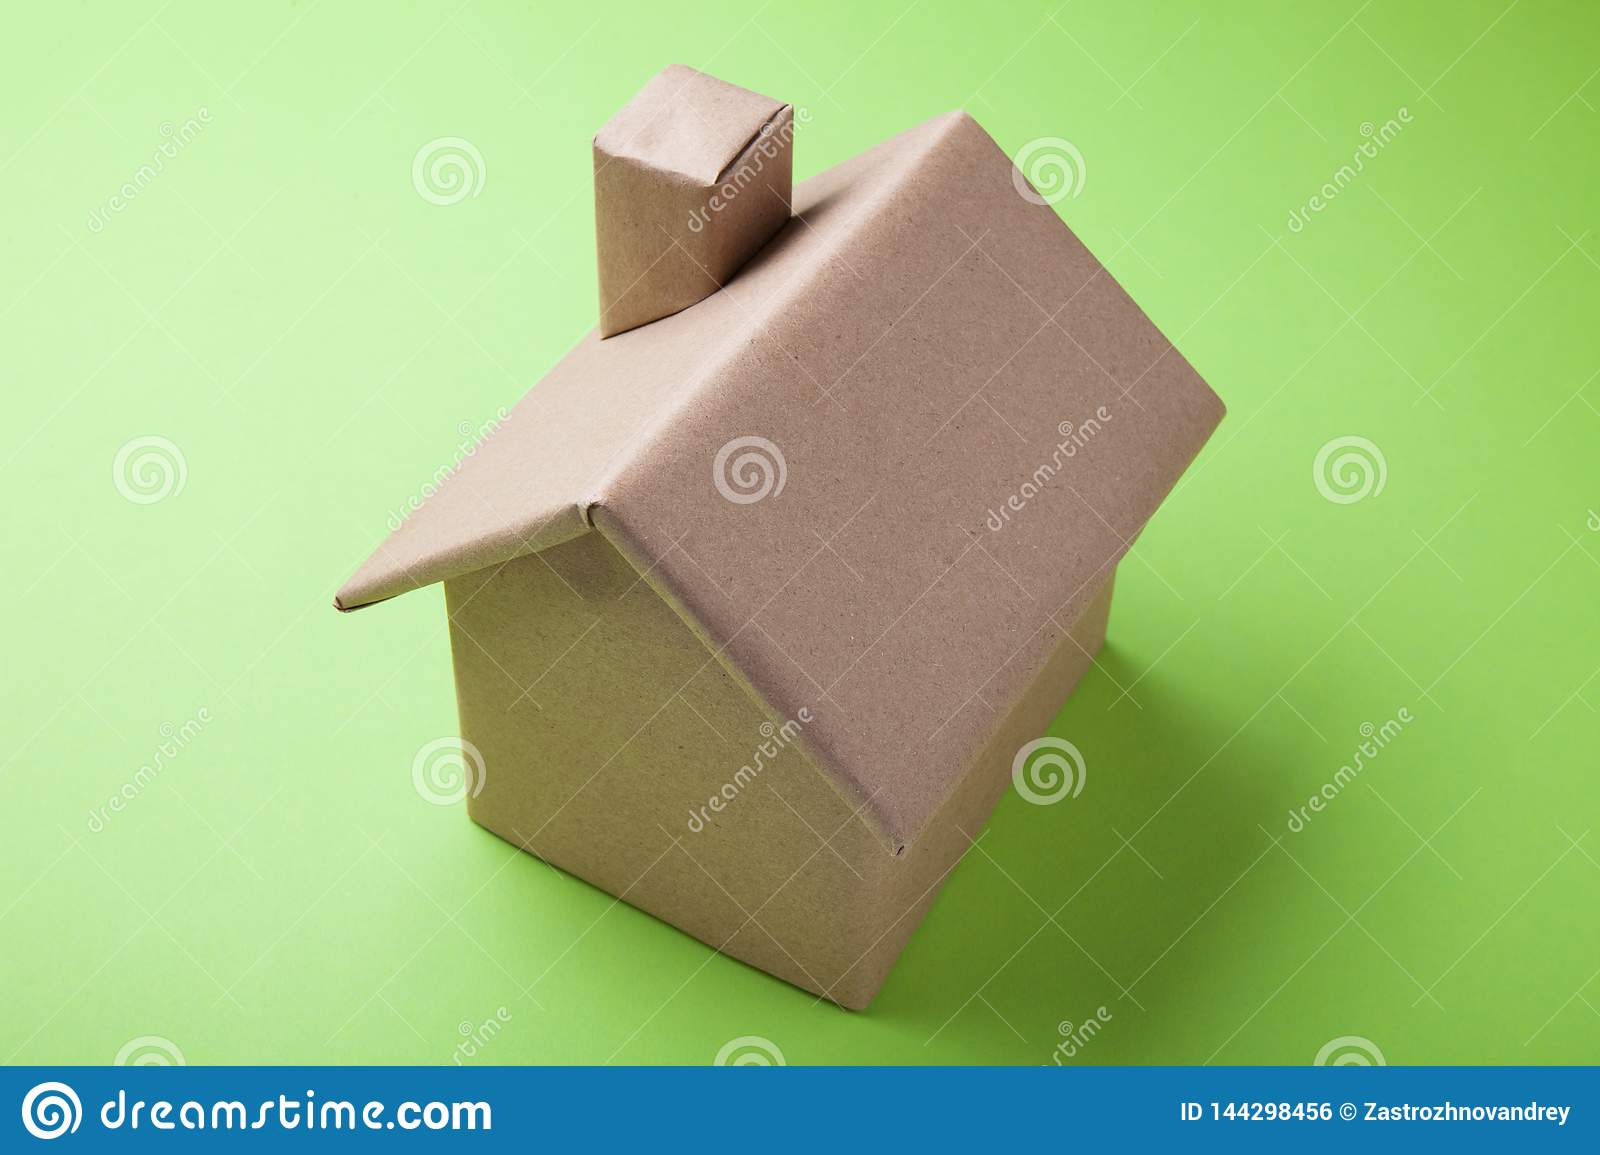 A sample of a dwelling house is made of cardboard. Green background